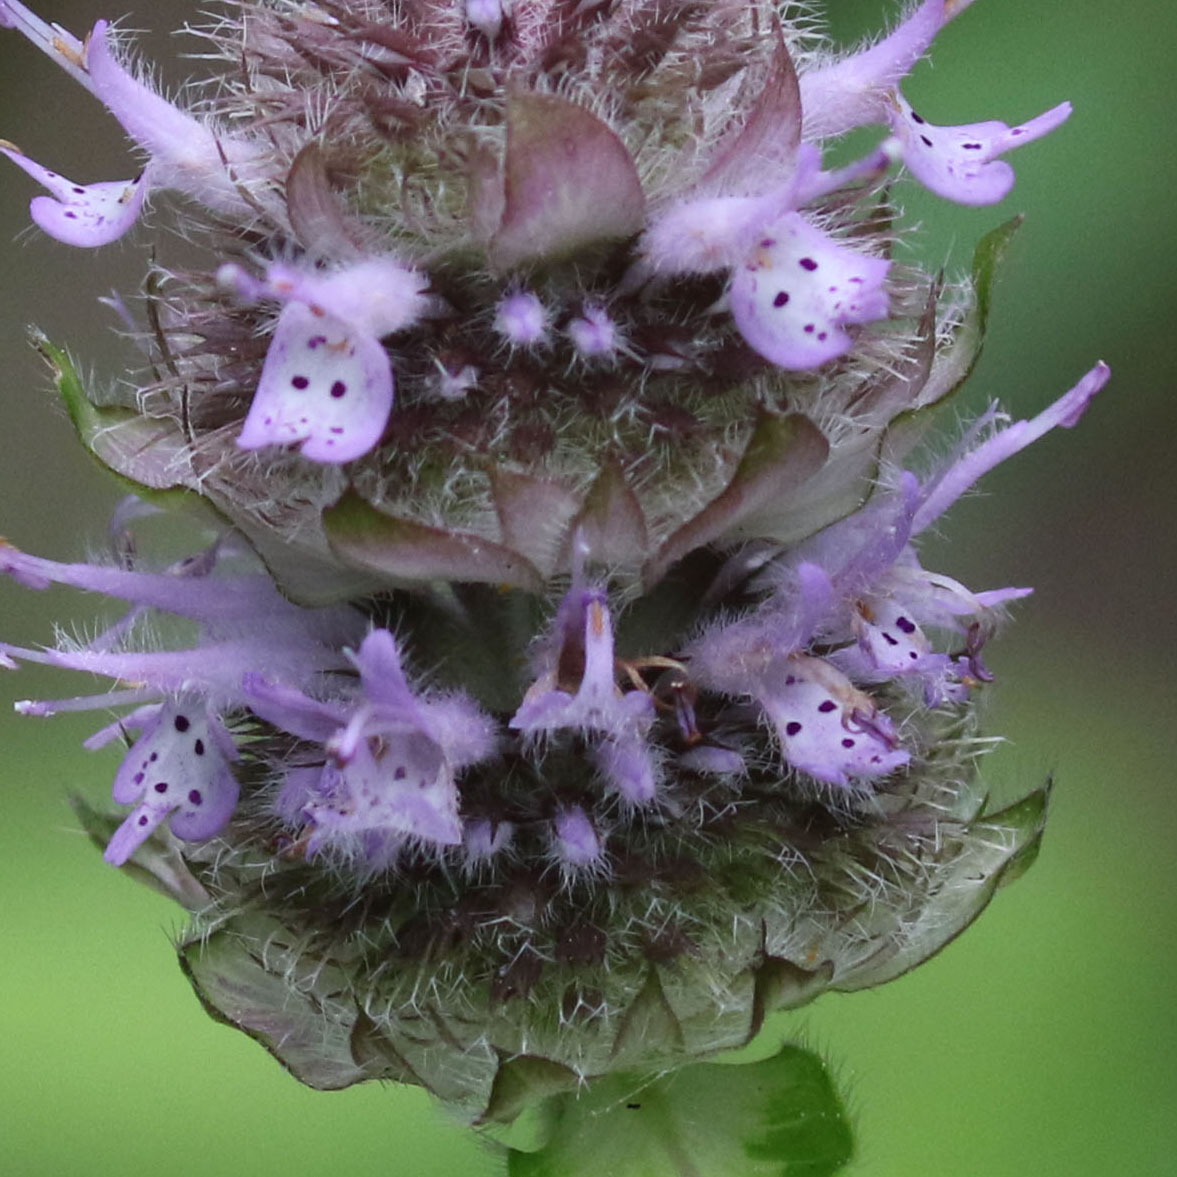 The Scientific Name is Blephilia ciliata. You will likely hear them called Downy Woodmint, Downy Pagoda-plant, Ohio Horsemint. This picture shows the Per Weakley et al, clusters of flowers rest on a whorl of fringed bracts. of Blephilia ciliata